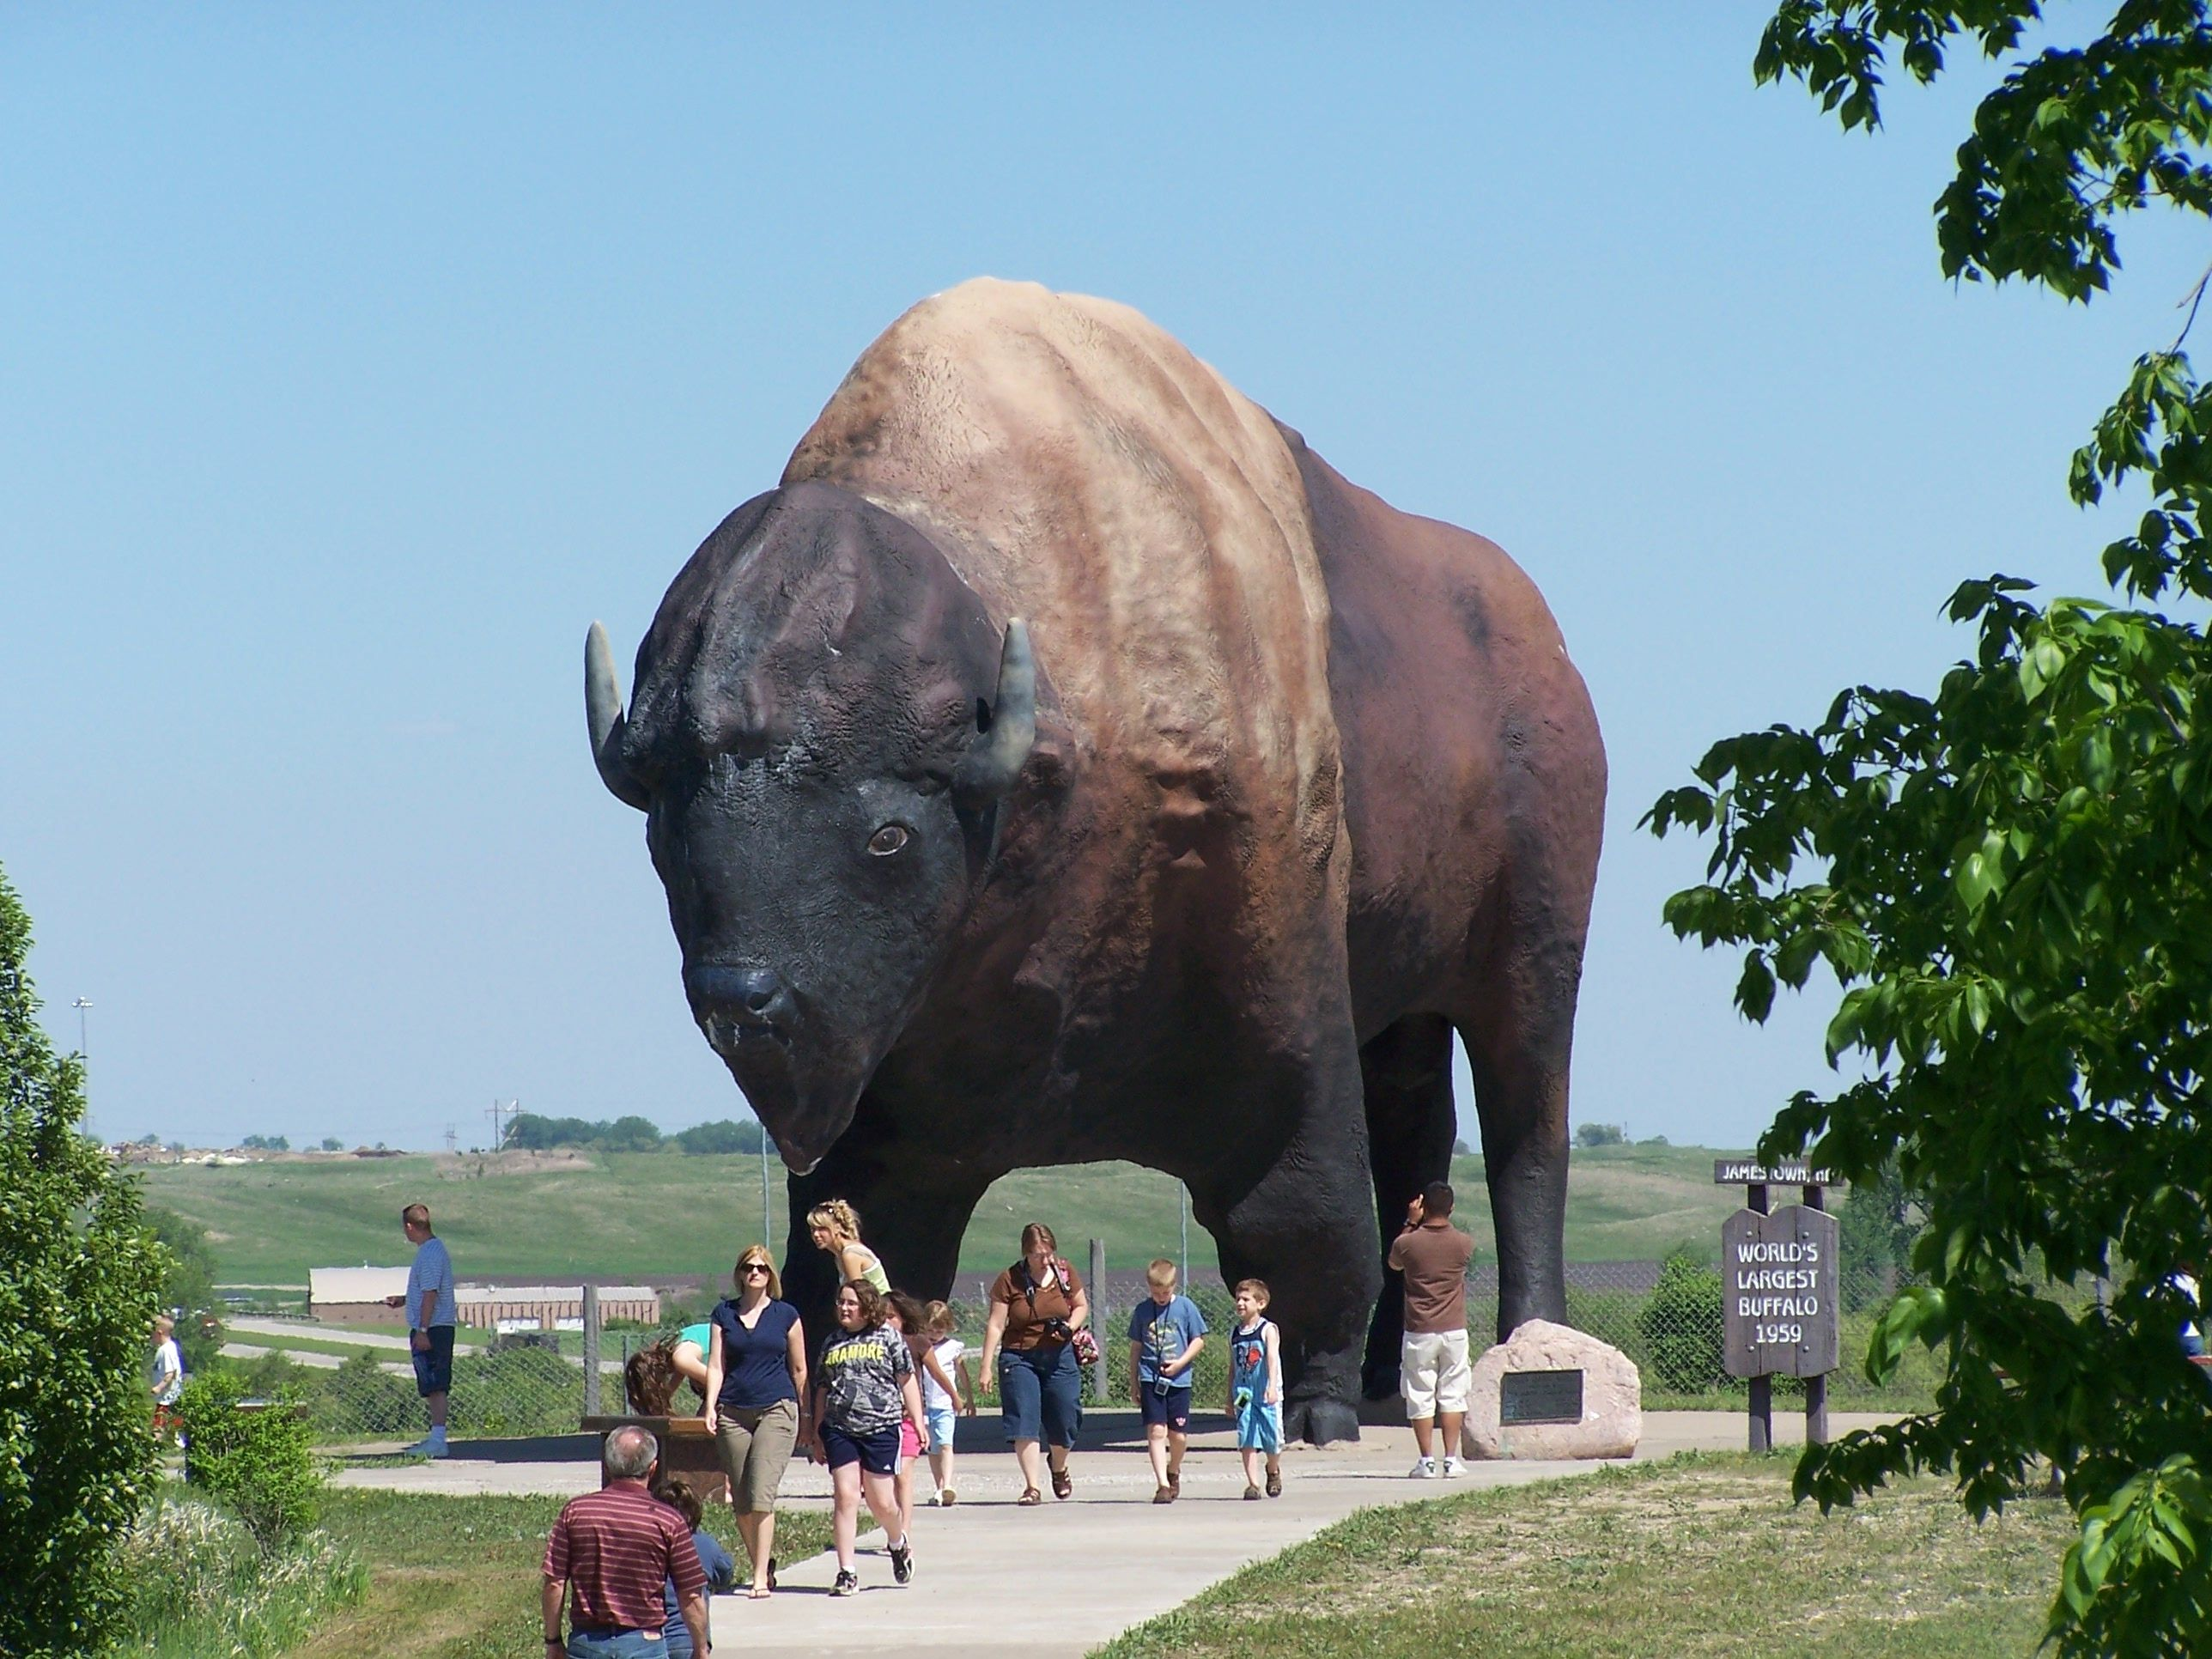 World's Largest Buffalo Monument in Jamestown, ND ...